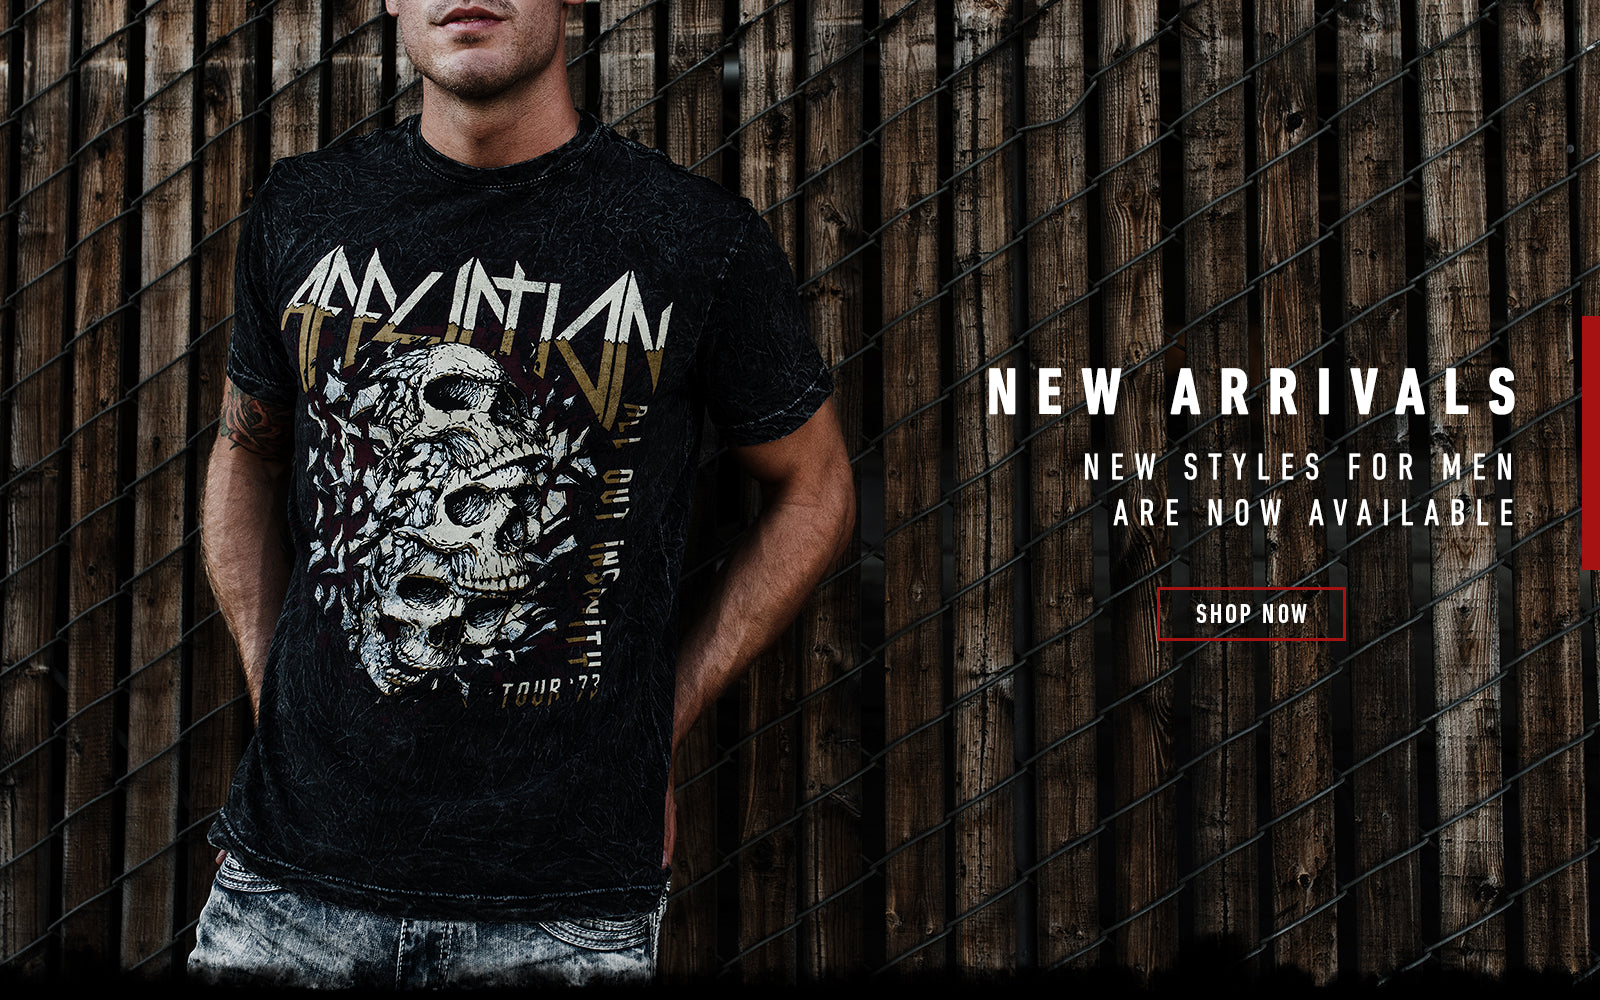 mens new arrivals new styles for men are now available